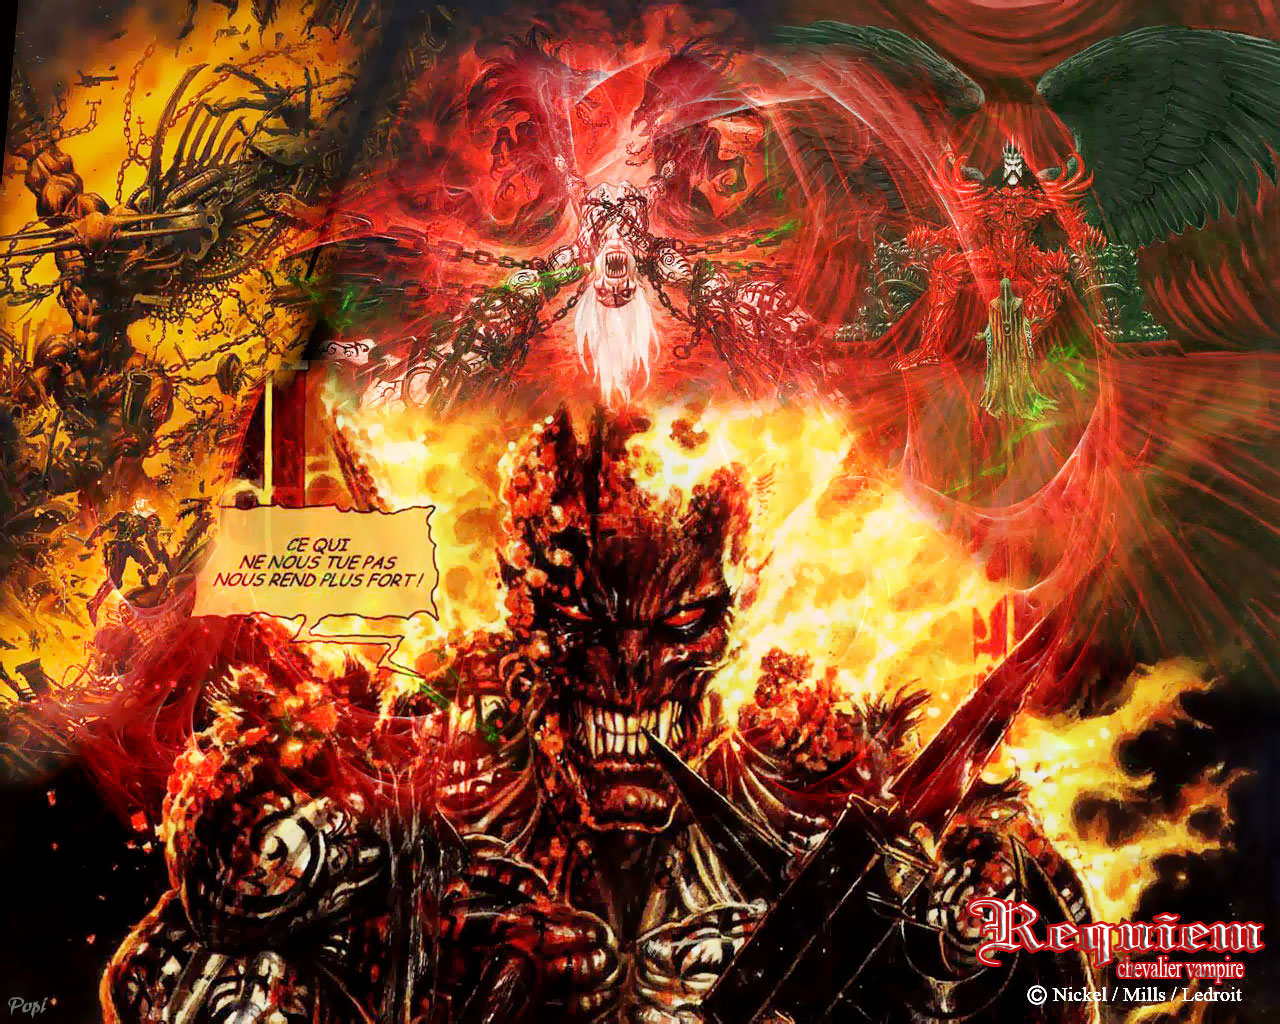 http://theevilsnest.com/images_Site/wallpapers/requiem_wallpaper_1280x1024.jpg